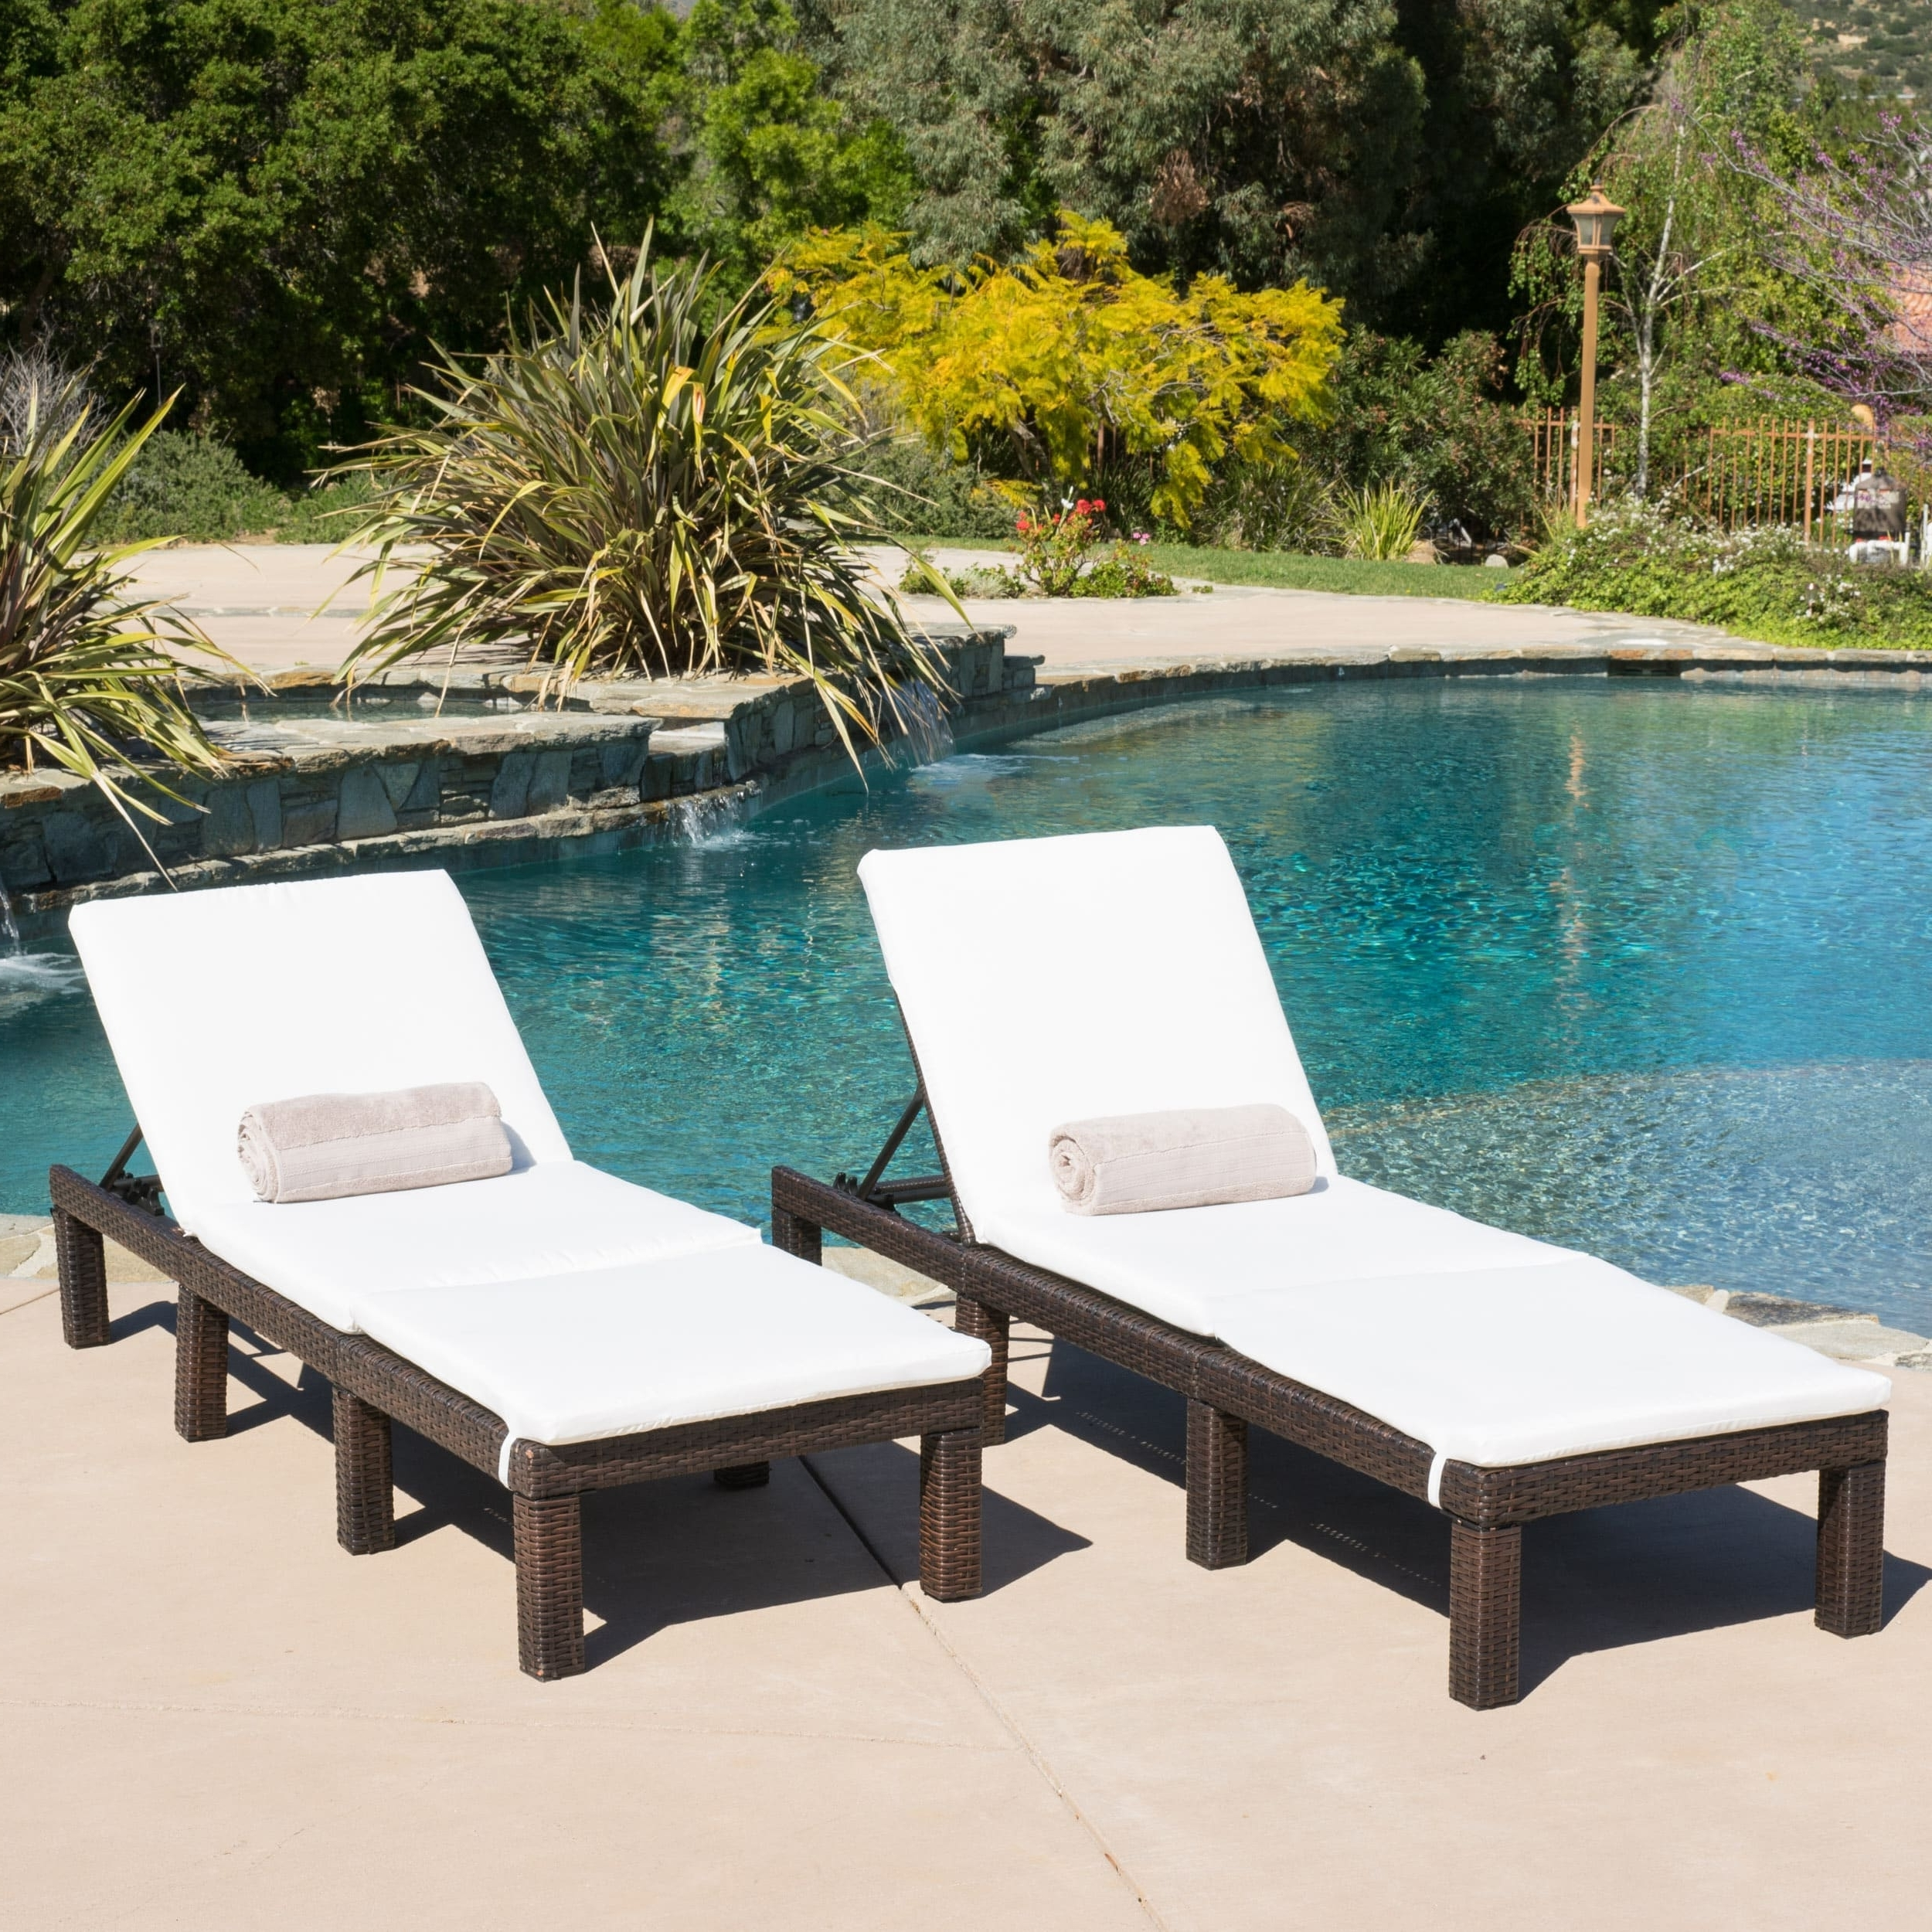 Widely Used Outdoor Chaise Lounges Within Jamaica Outdoor Chaise Lounge With Cushion (set Of 2) (View 7 of 15)